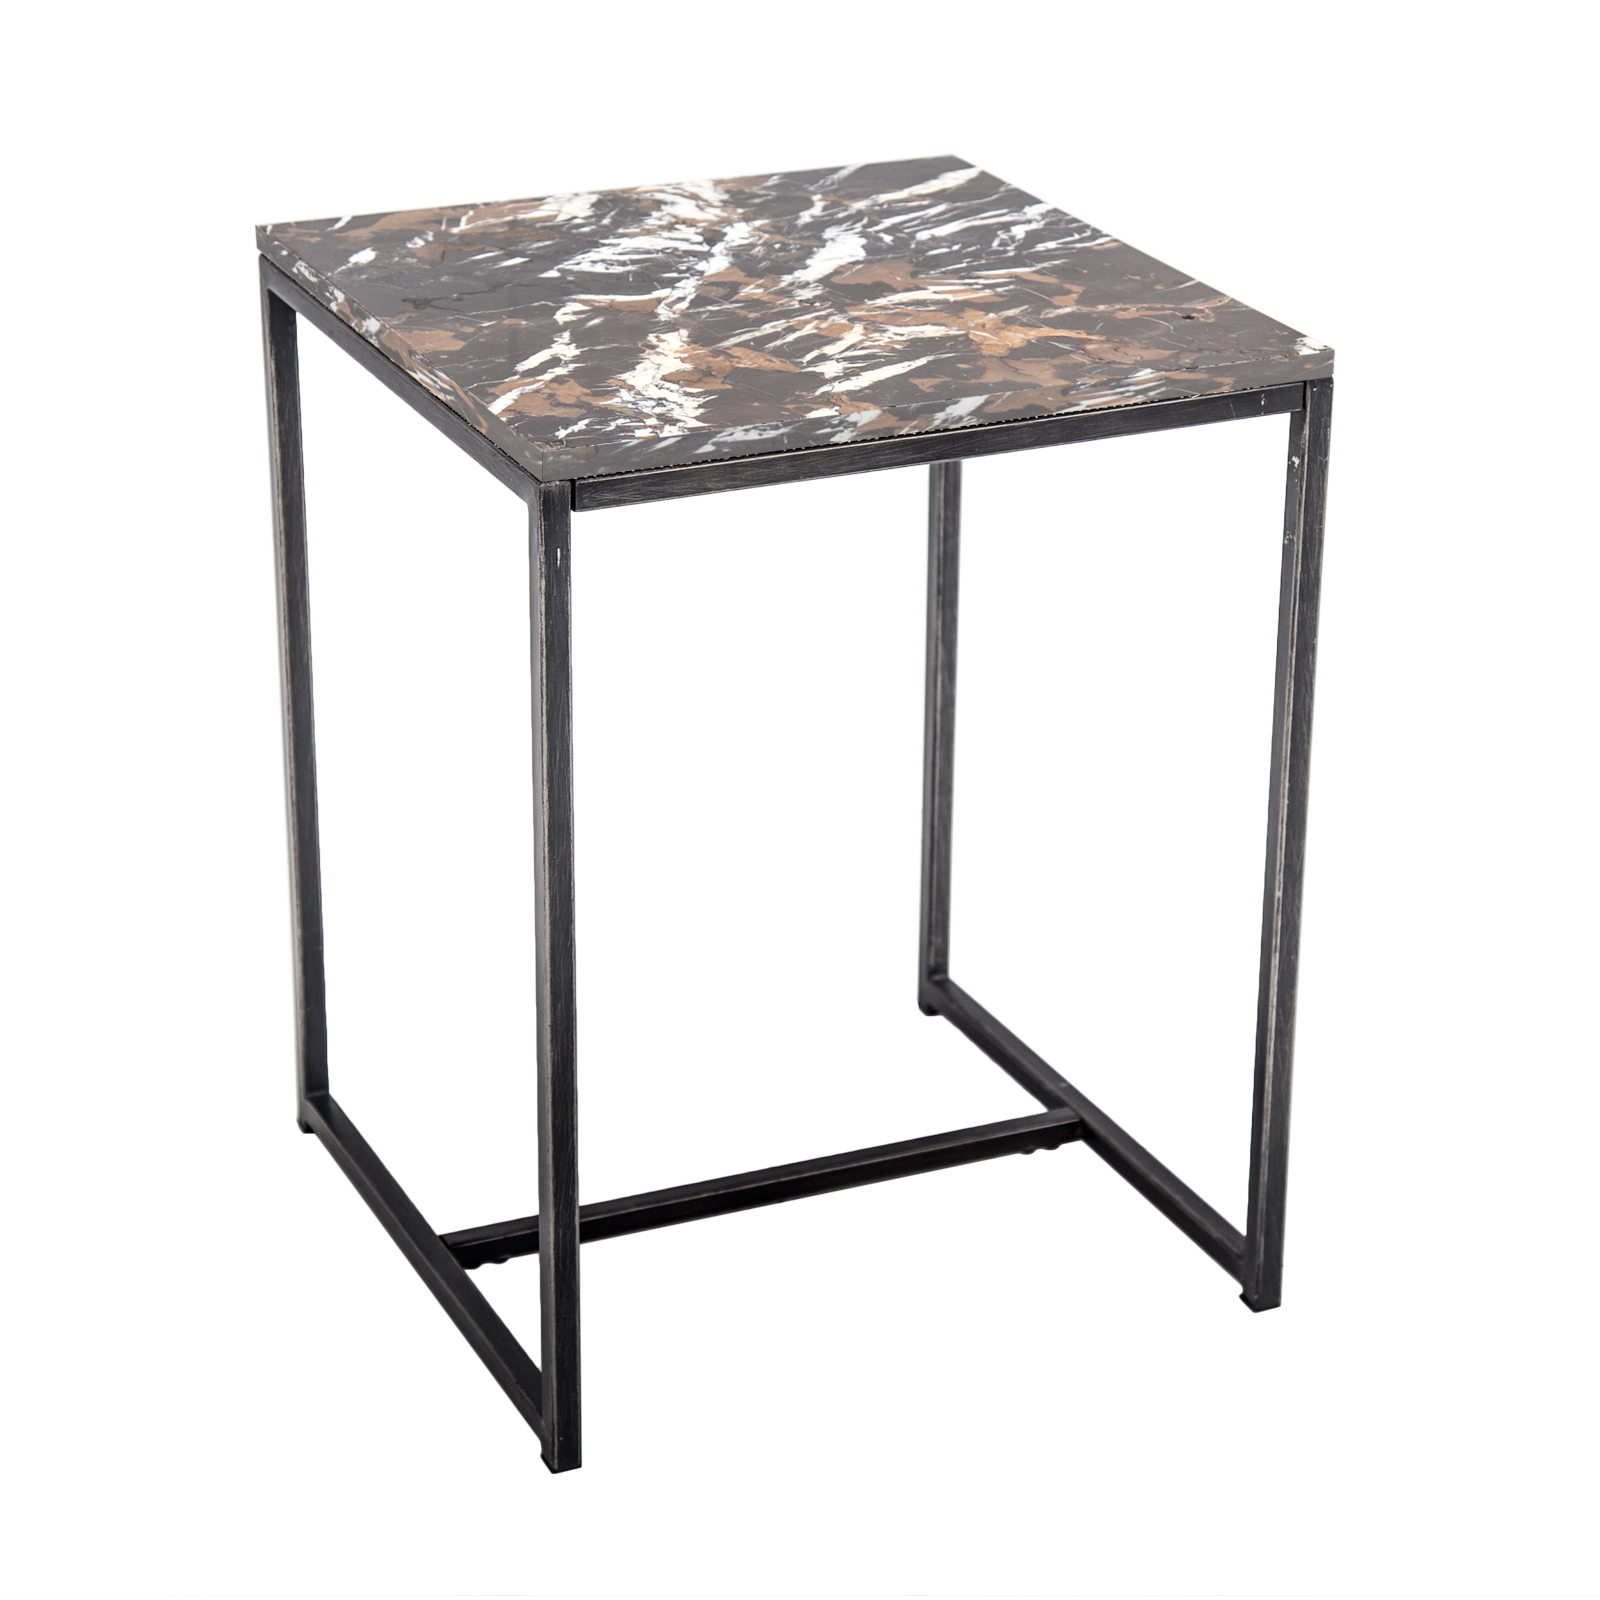 marble side table rentals furniture rental delivery formdecor marbre brown outdoor black small triangle corner ellipsis dark coffee set hammered metal rustic wooden trestle wood